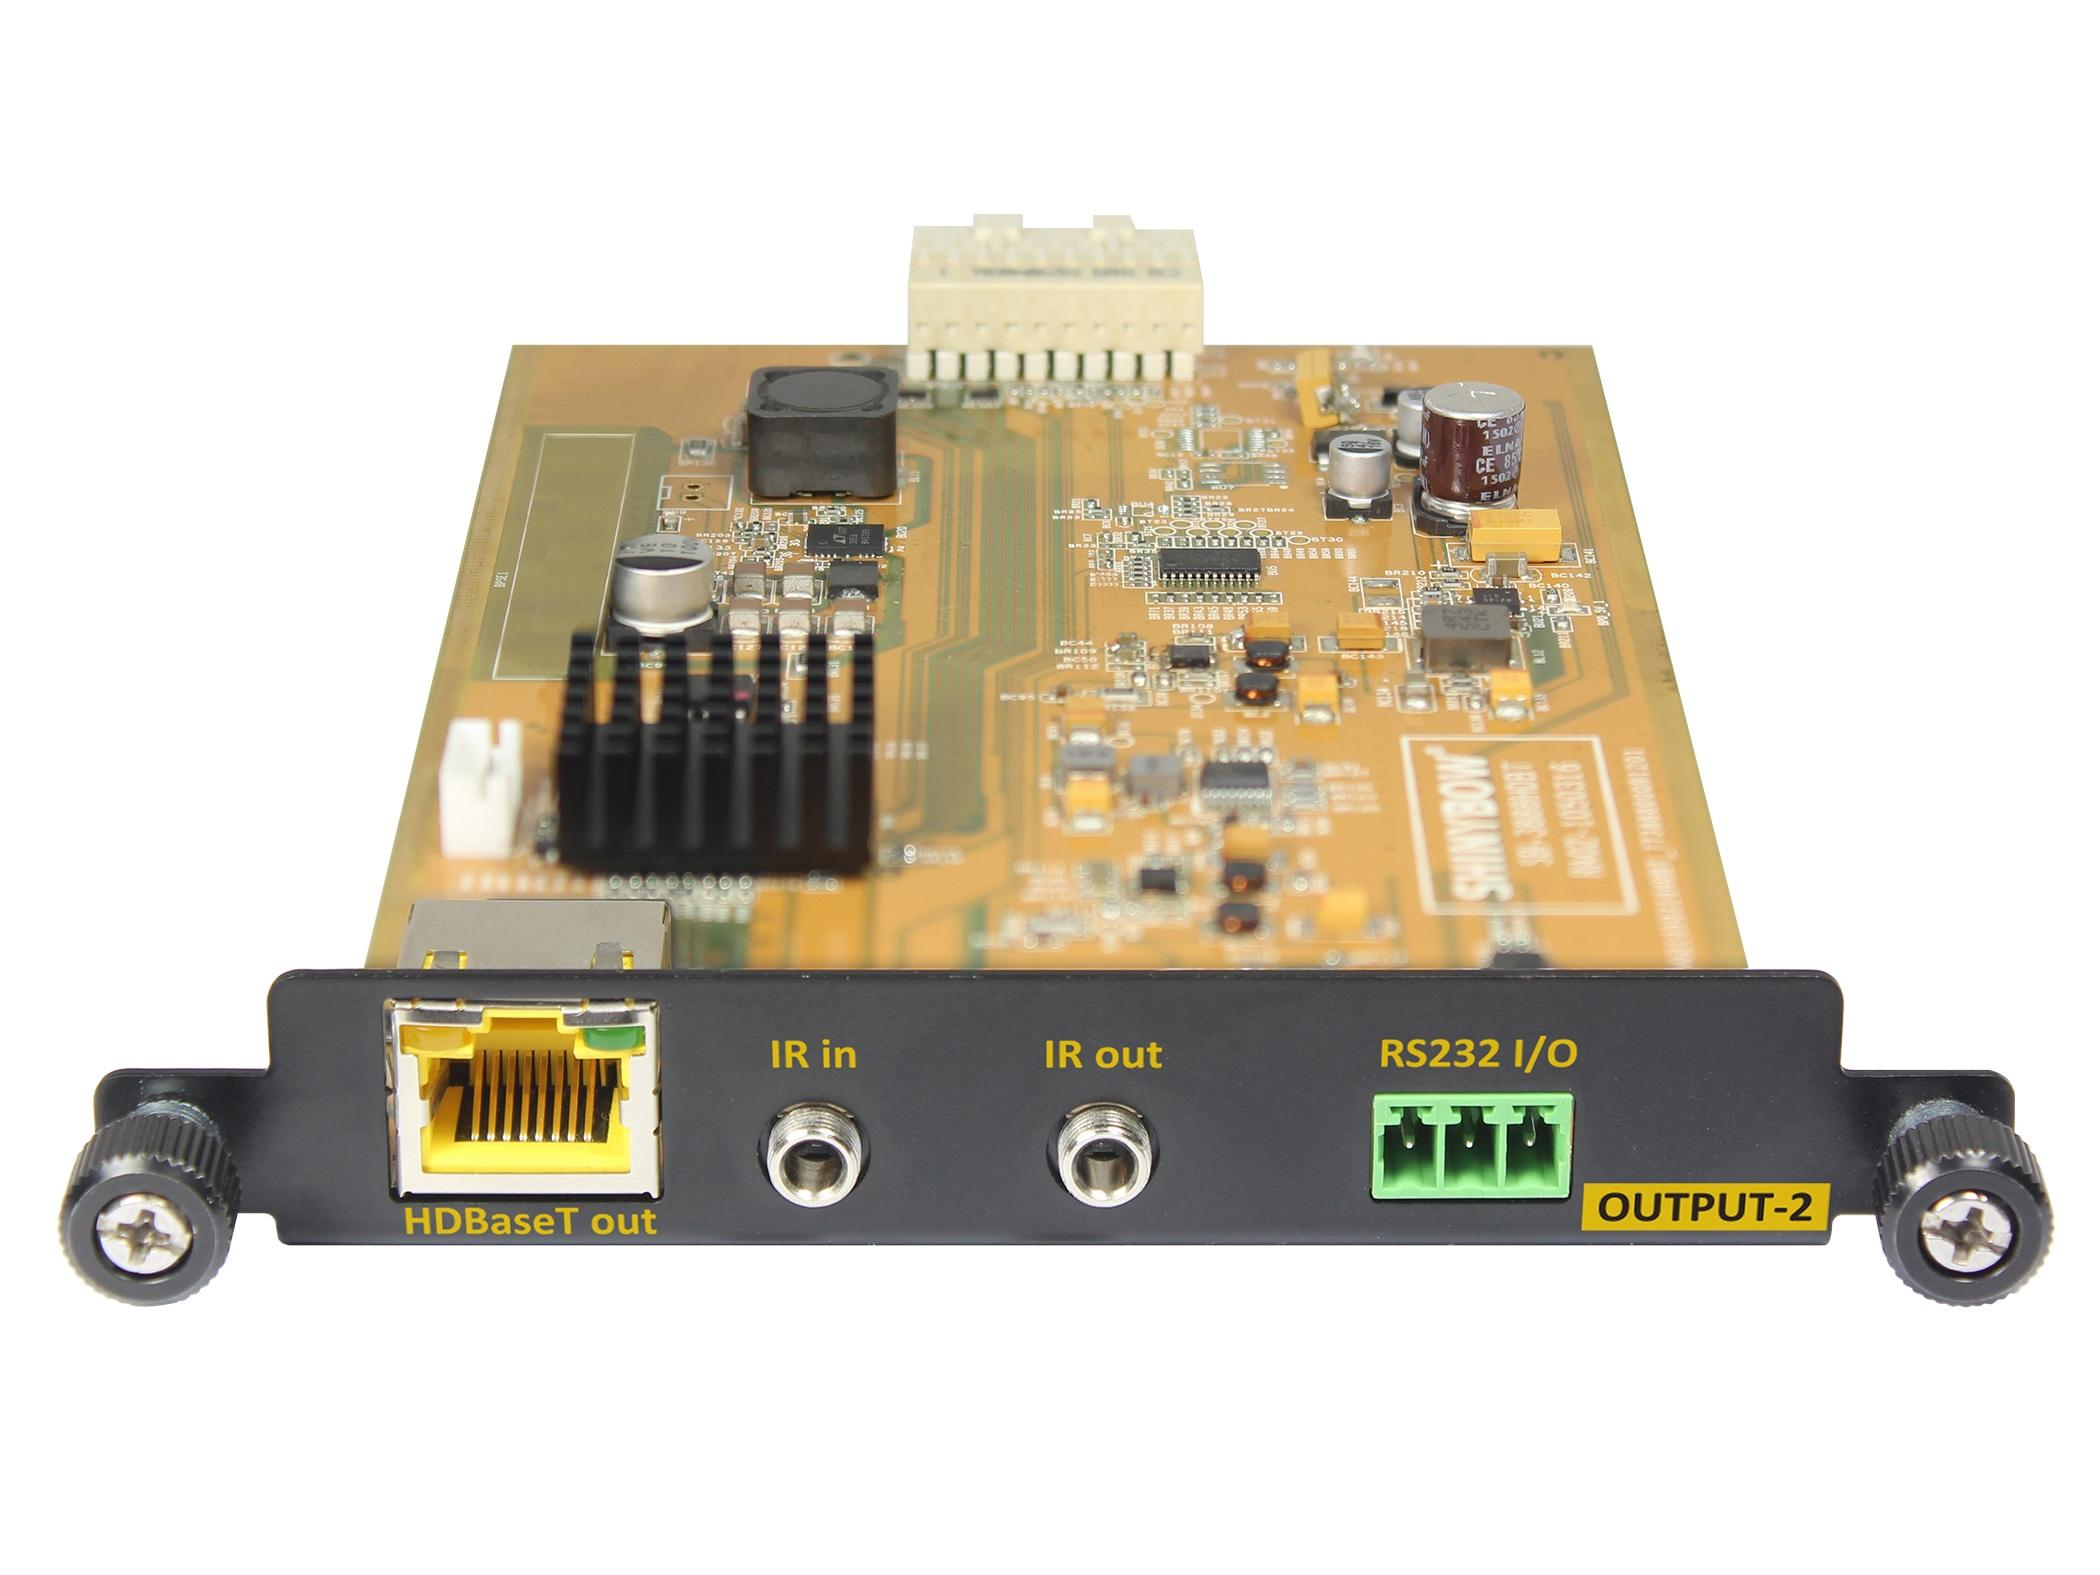 T-HDBT-100 HDBaseT Extender(Transmitter) Module with IR/RS-232 by Shinybow